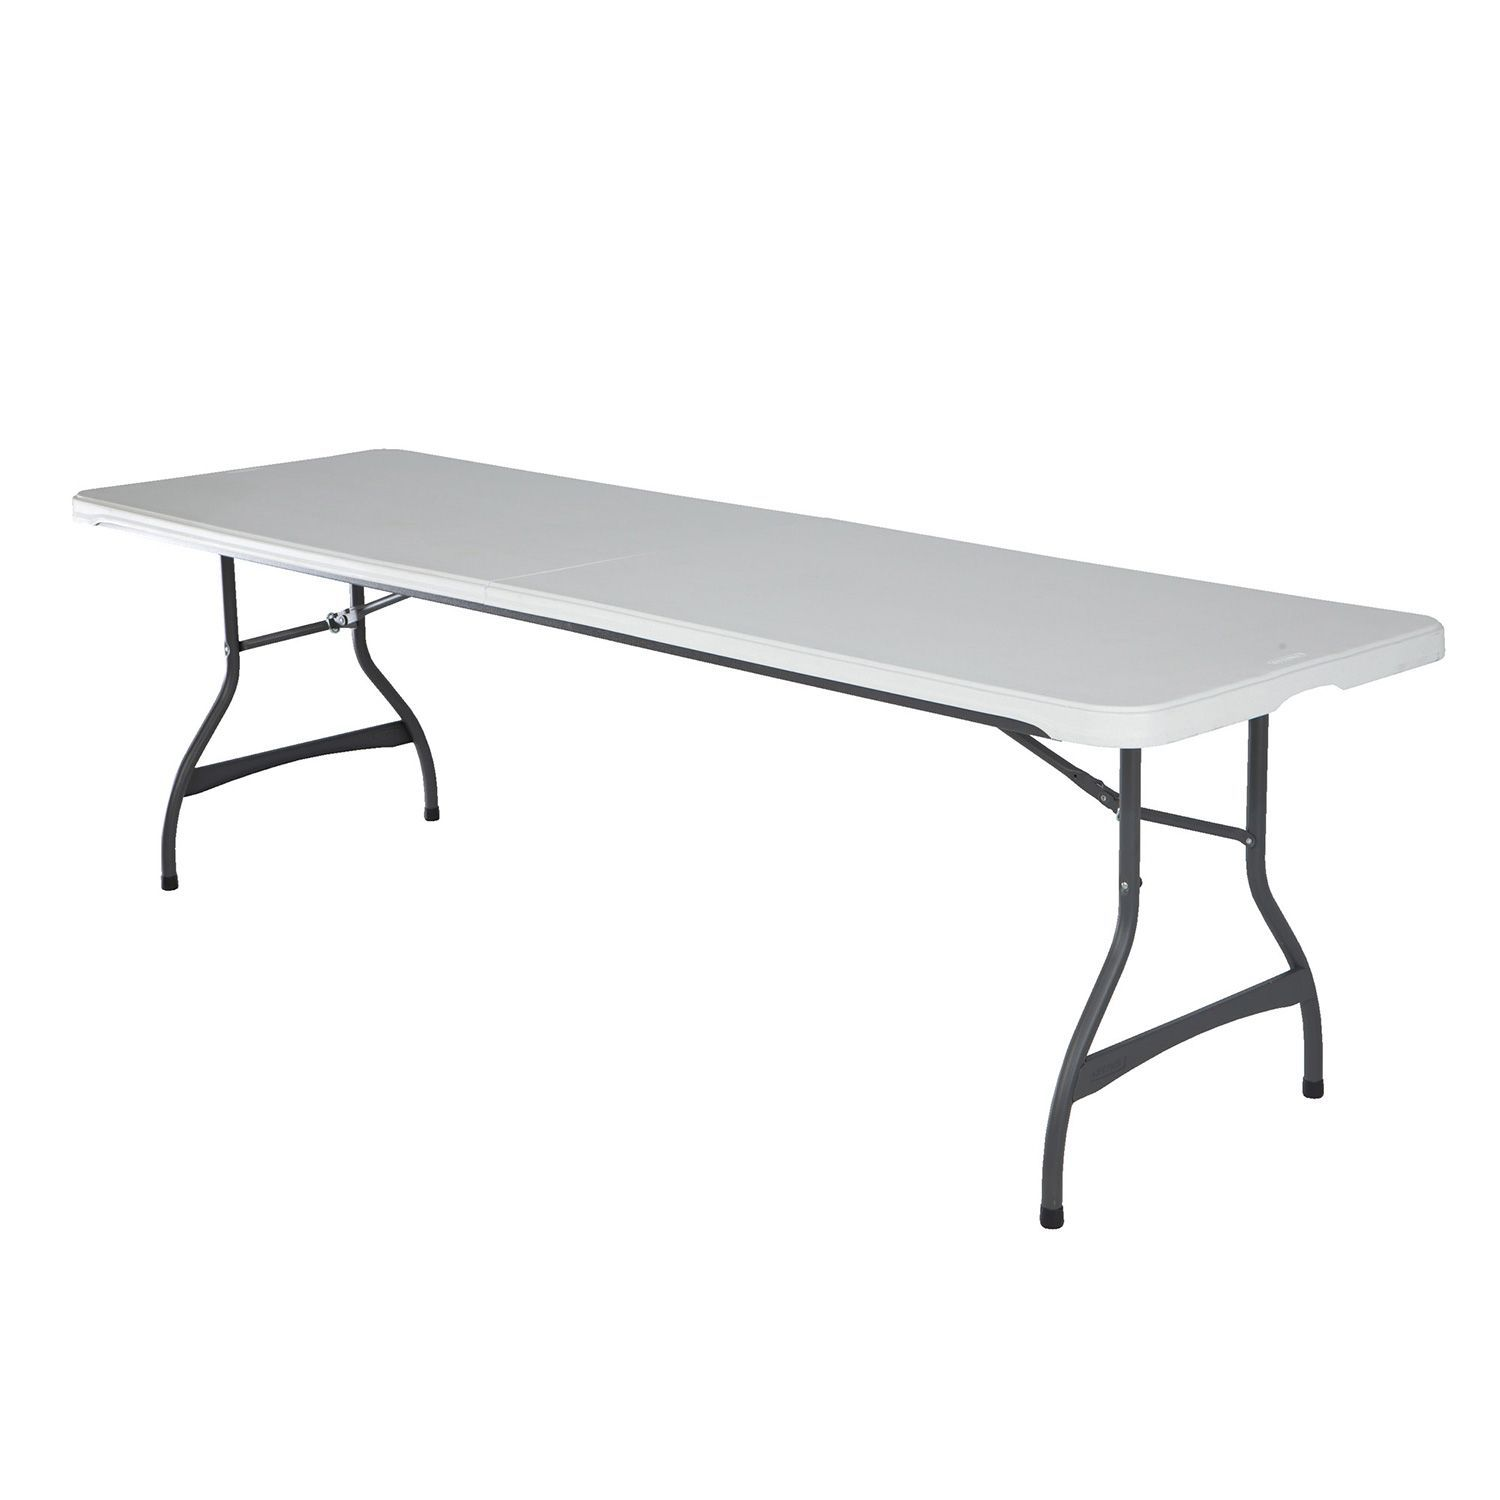 Lifetime 8 mercial Nesting Table White Granite Sam s Club